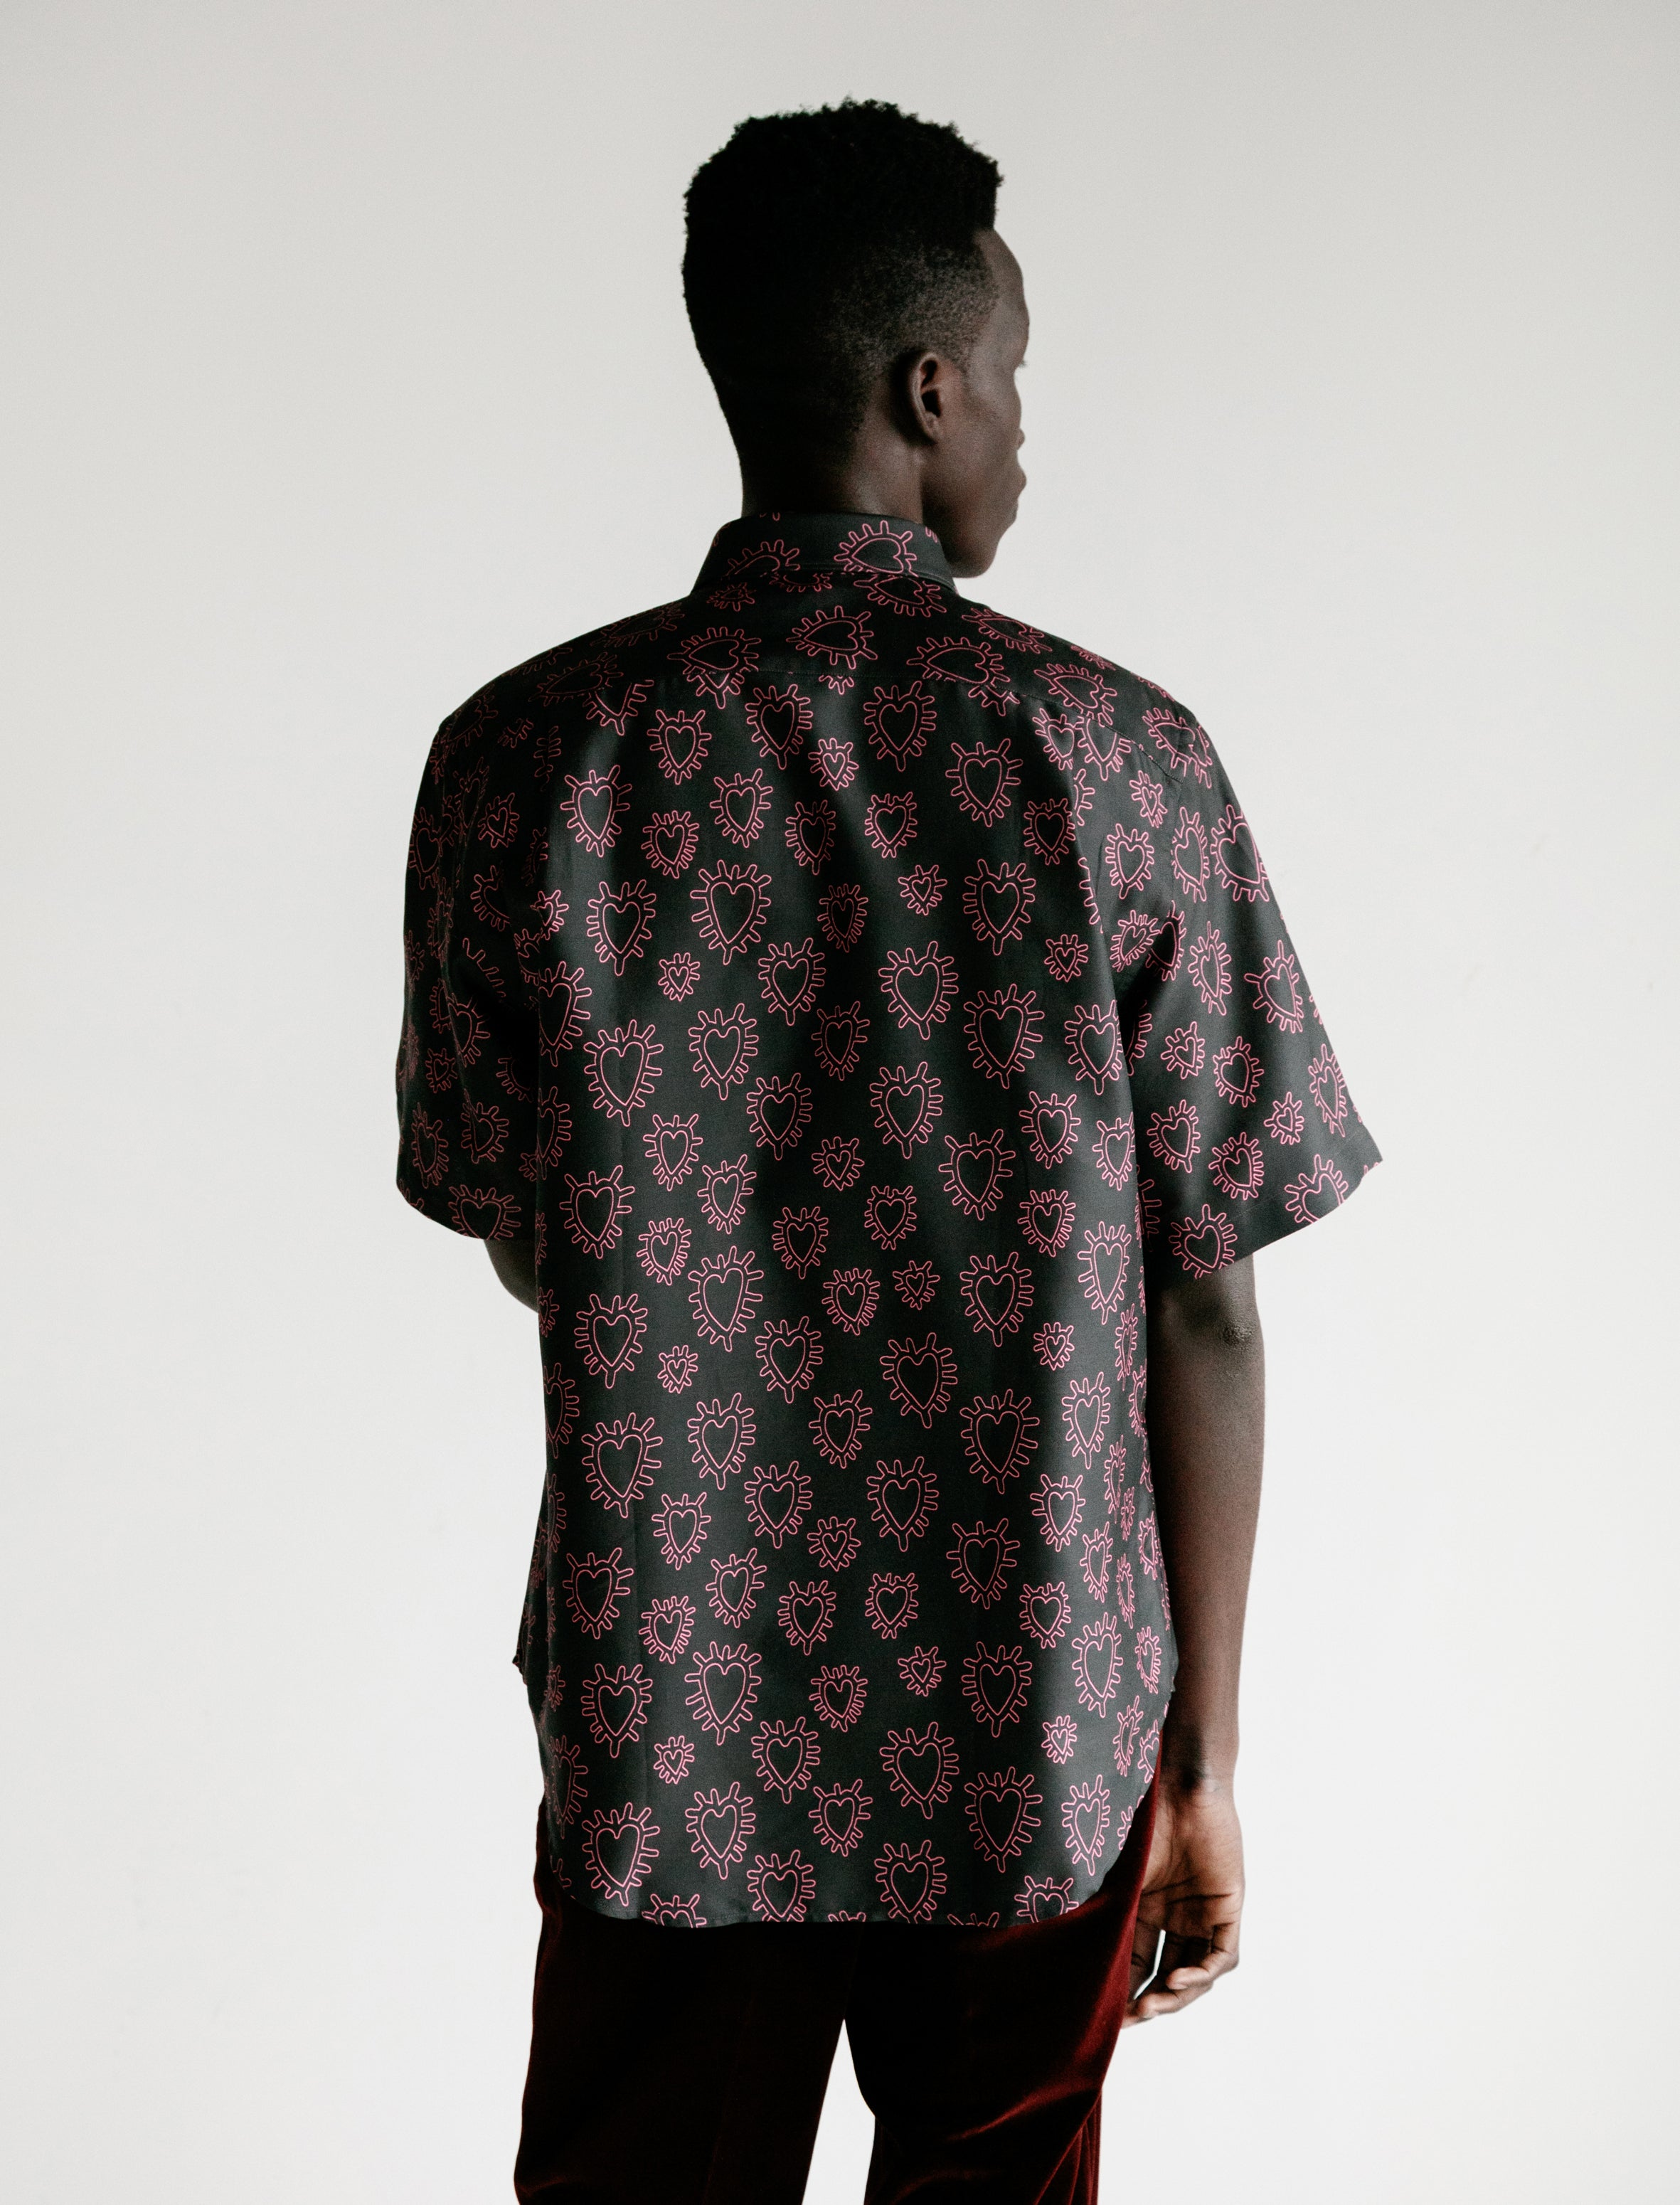 Cobra S.C. SS Model 1 Shirt Printed Silk Pink Hearts